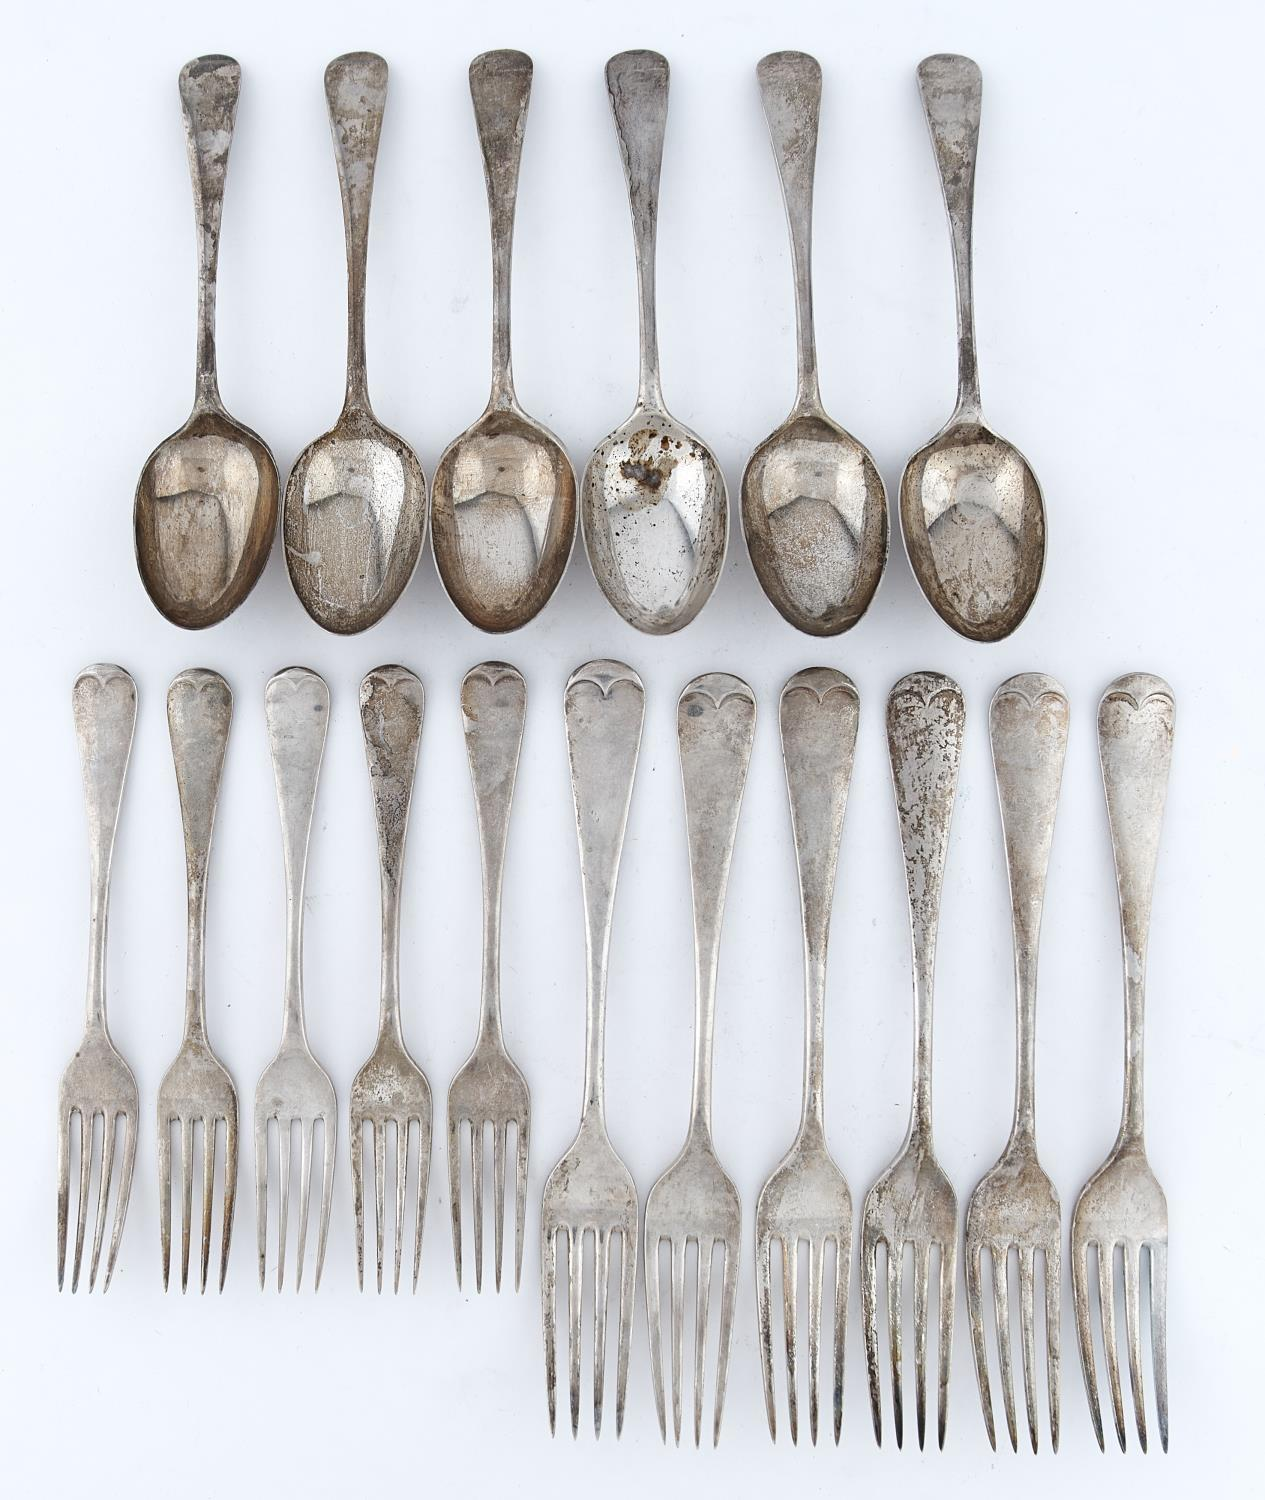 A GEORGE V TABLE SERVICE, OLD ENGLISH PATTERN, COMPRISING SIX TABLE FORKS, FIVE DESSERT FORKS, SIX